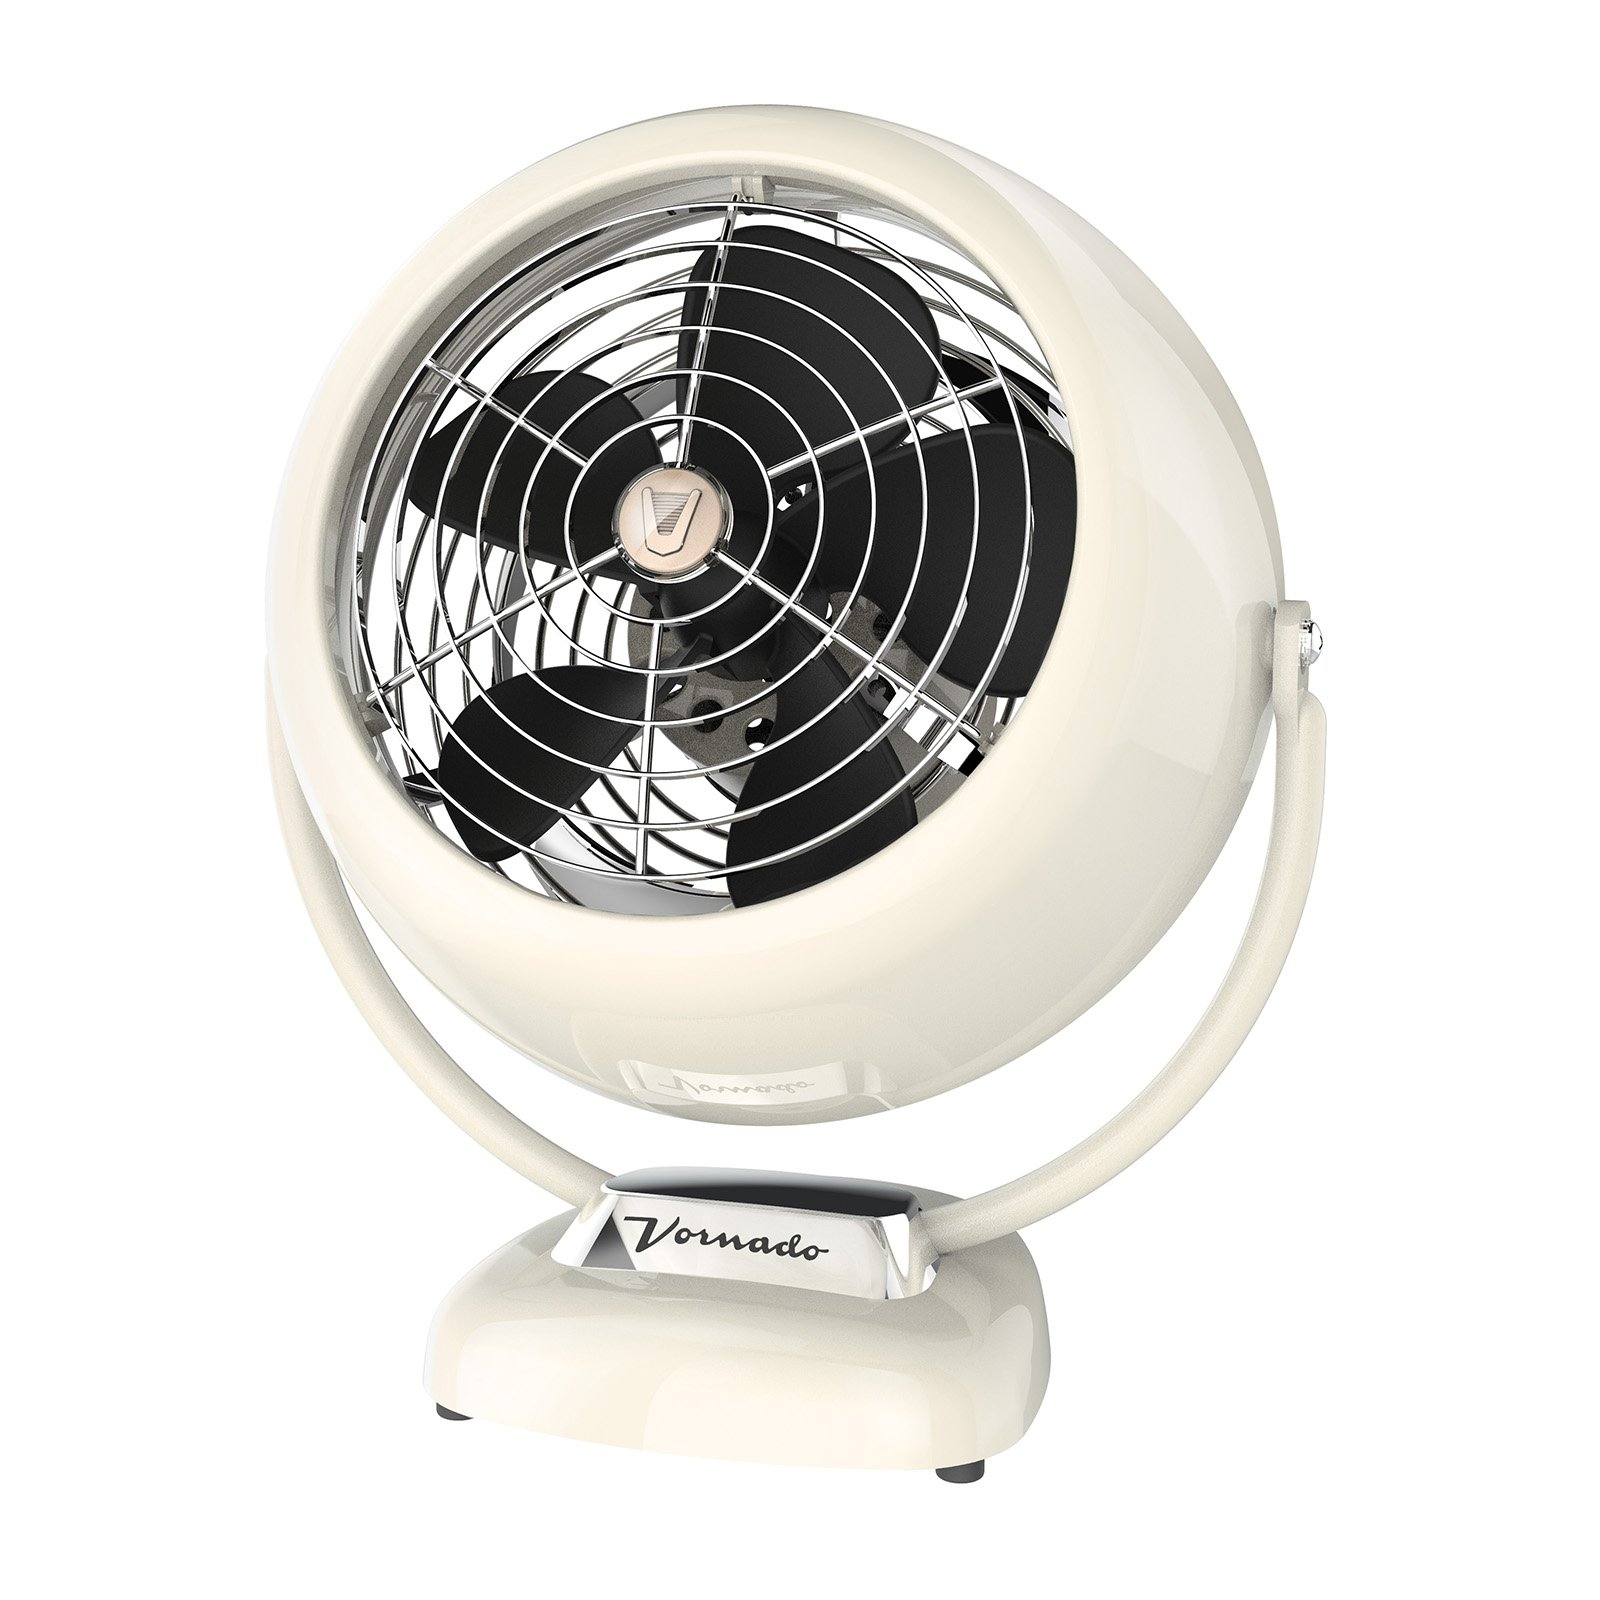 Vornado VFAN 13.8 in. Vintage Whole Room Air Circulator